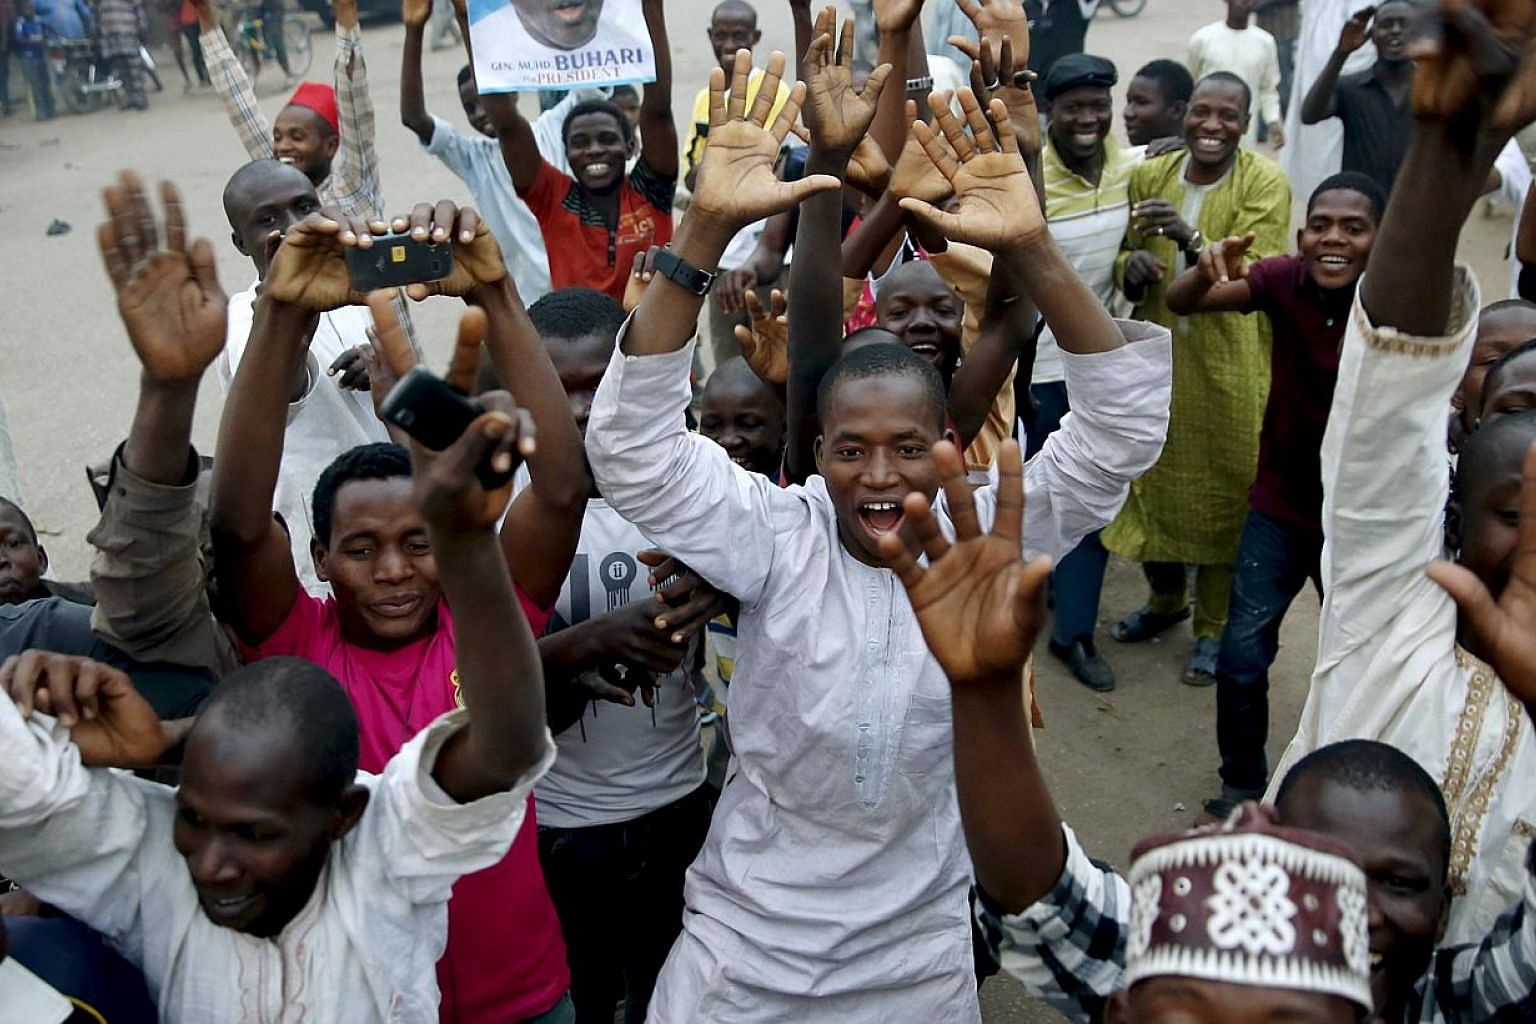 Supporters of the presidential candidate Muhammadu Buhari and his All Progressive Congress (APC) party celebrate in Kano on Tuesday. Three after Buhari became the first Nigerian to oust a president through the ballot box, putting him in charge of Afr